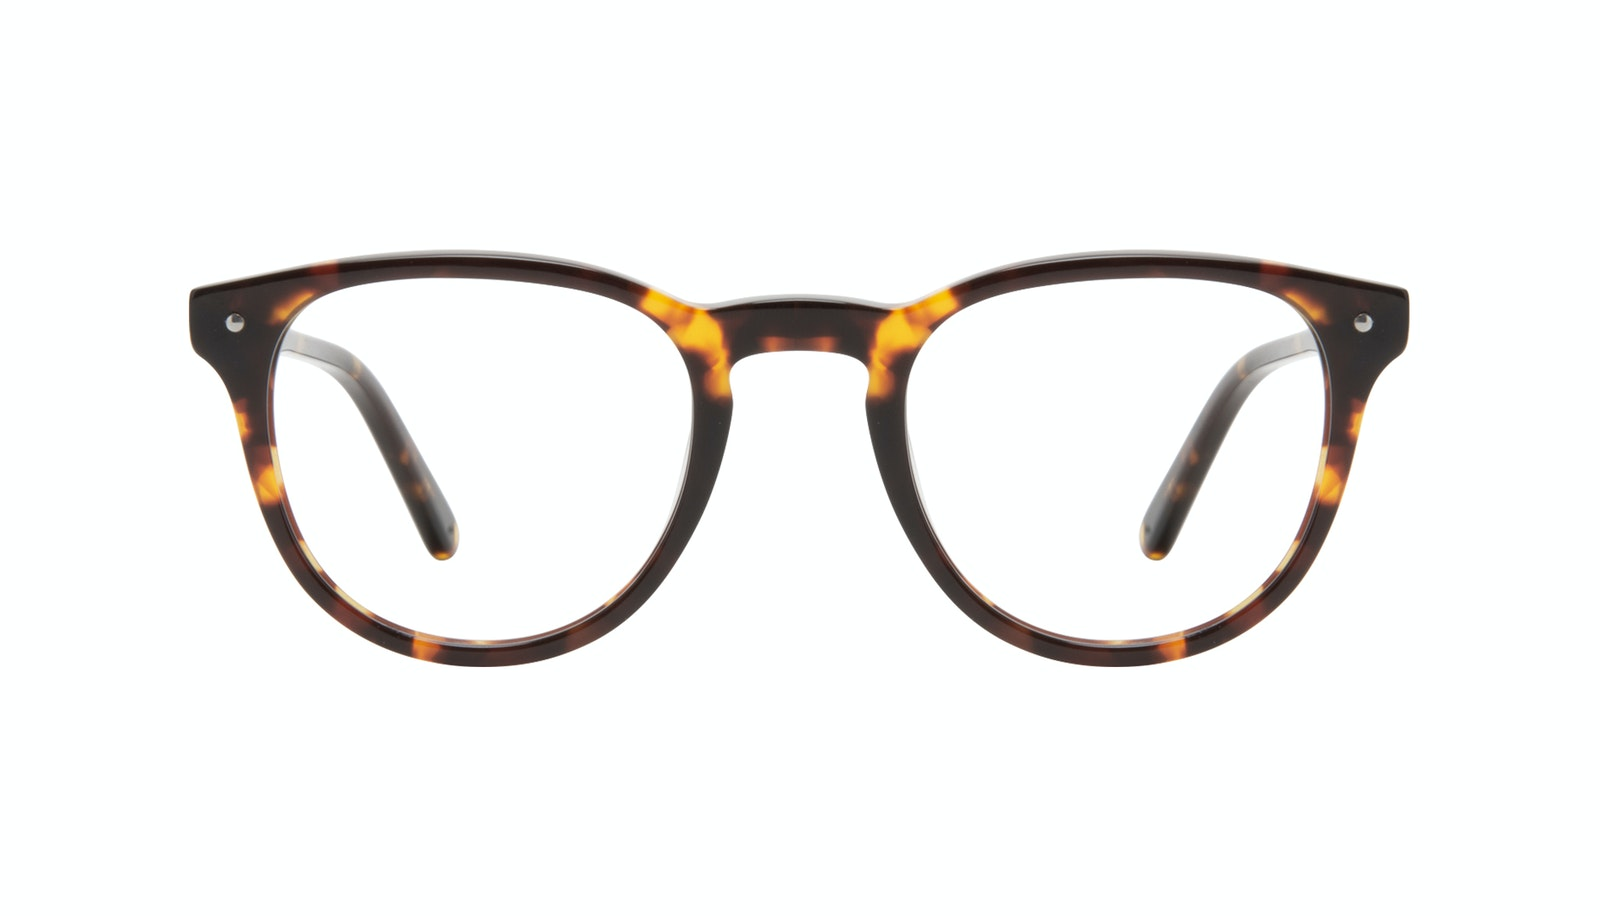 Affordable Fashion Glasses Round Eyeglasses Men Cult Tortoise